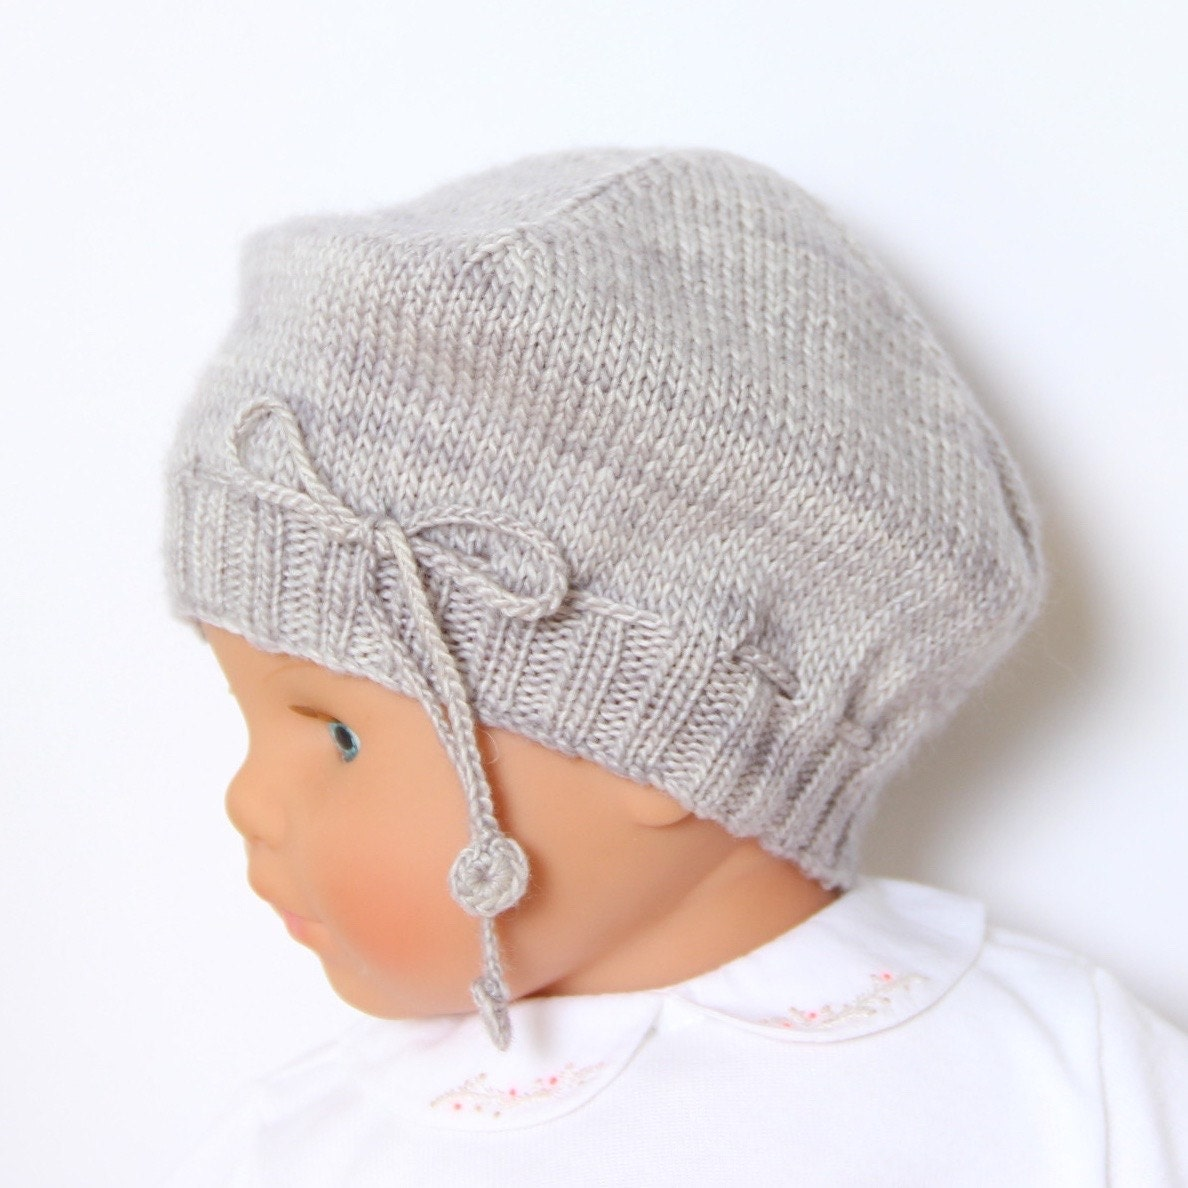 Knitting Pattern Hat Size 9 Needles : Baby Hat / Knitting Pattern Instructions in English / PDF ...